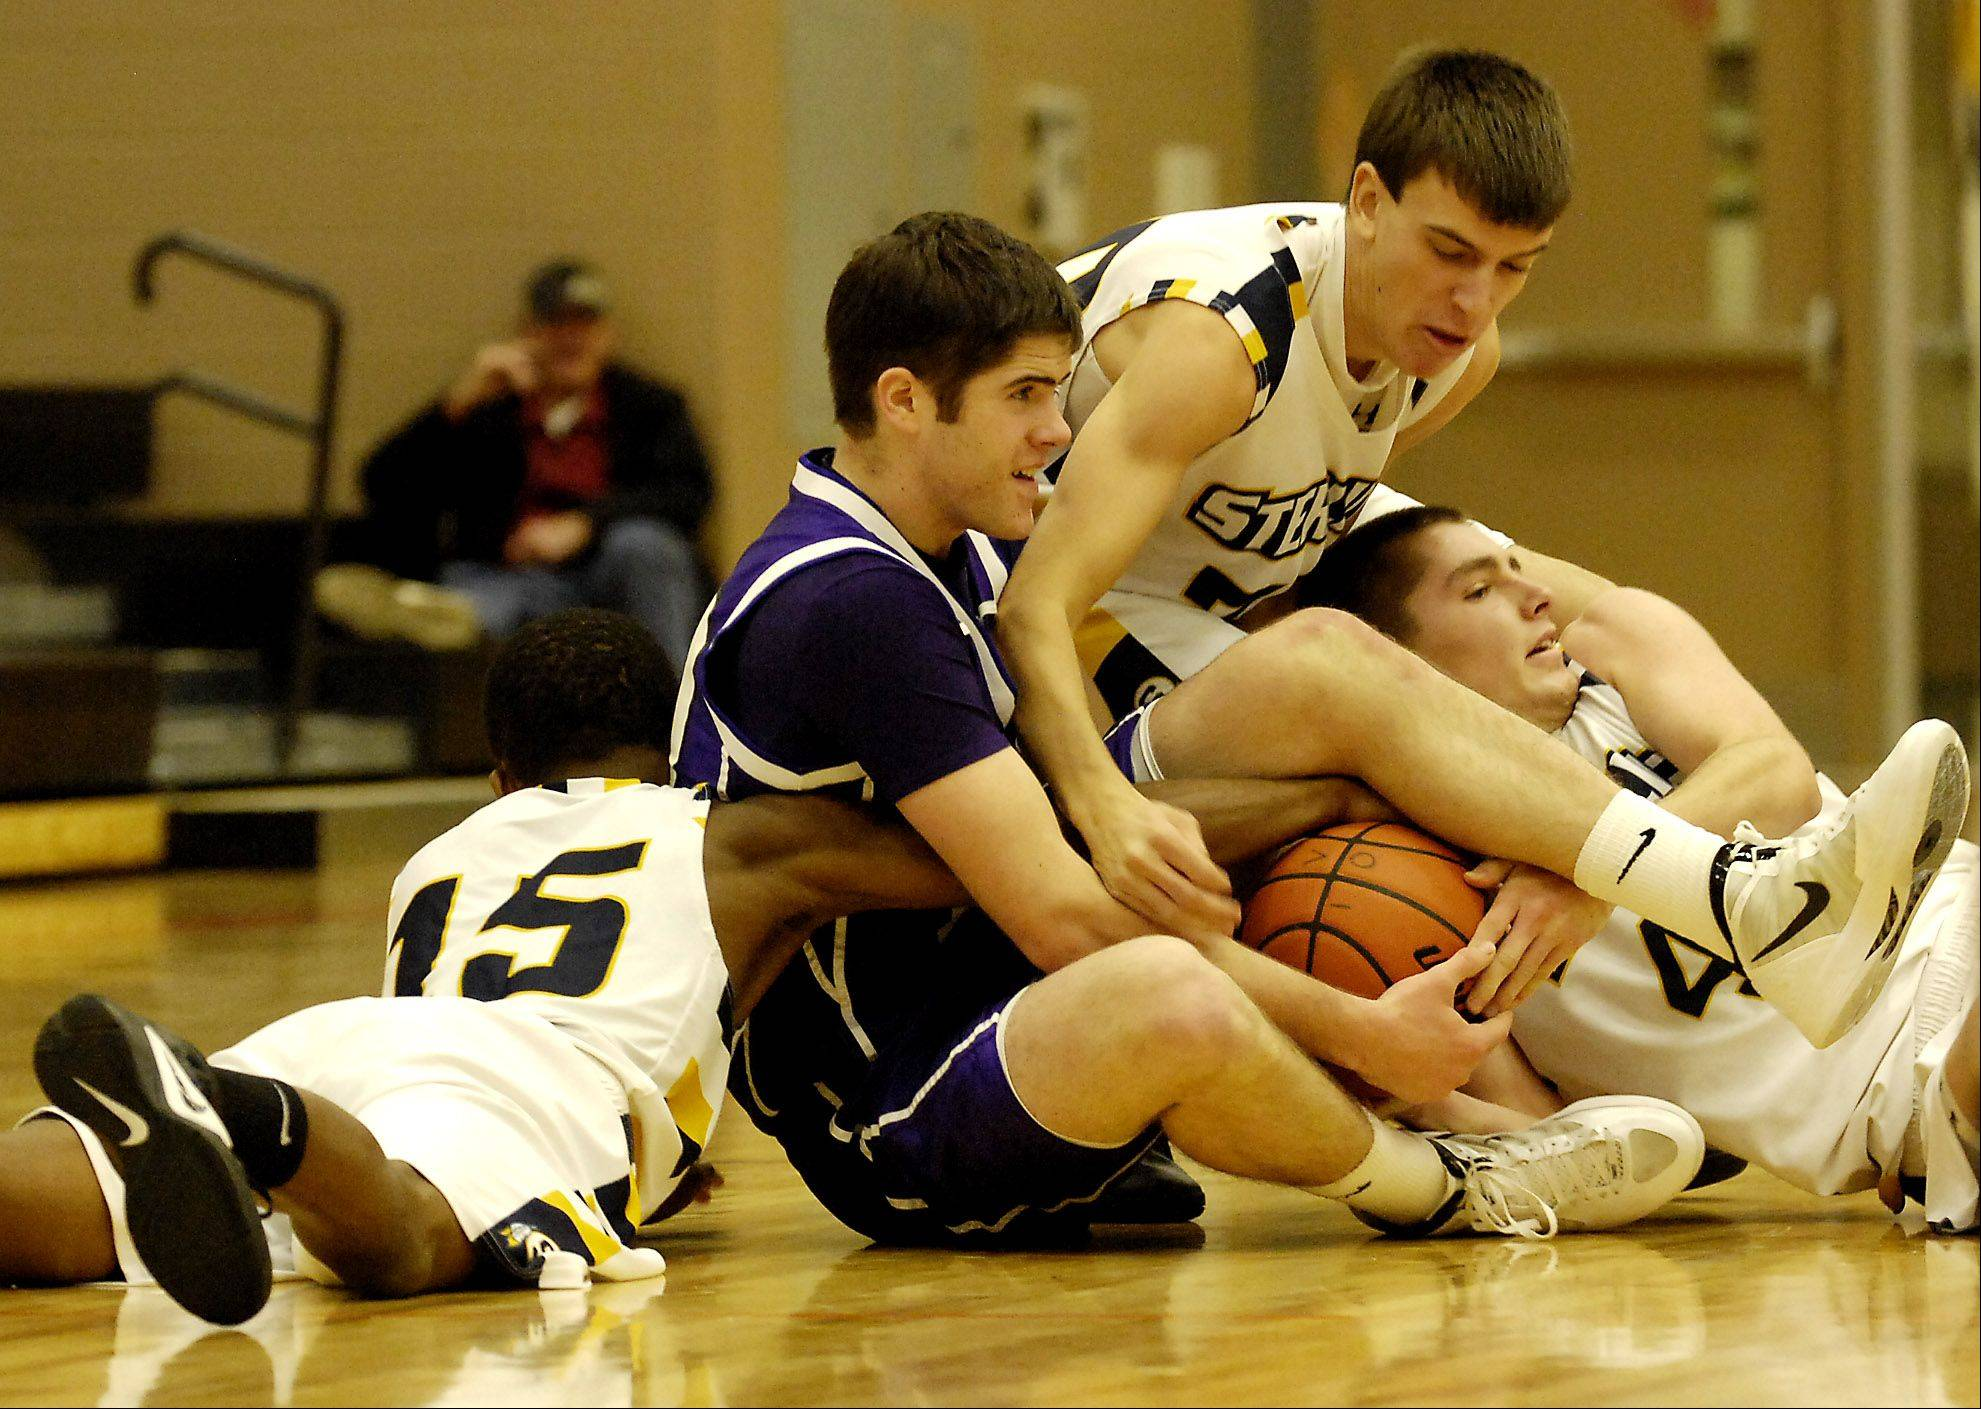 Hampshire's Tyler Crater battles Sterling's Cornell Hartz, left, Nathan Blackburn, middle, and Patrick Petrosky, right, for a loose ball during their game Wednesday in Dekalb.